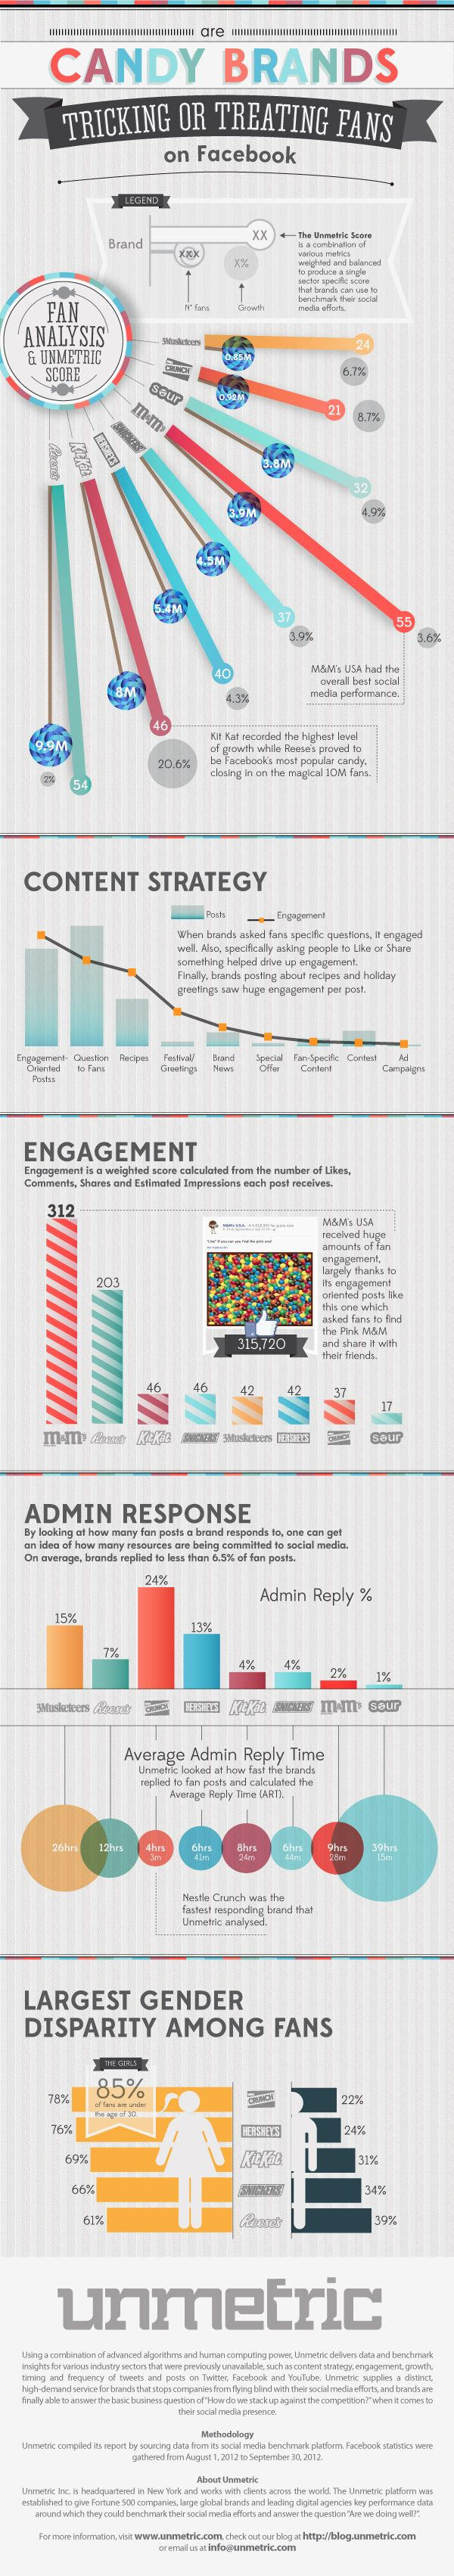 Are Candy Brands Tricking of Treating Fans on Facebook[INFOGRAPHIC]